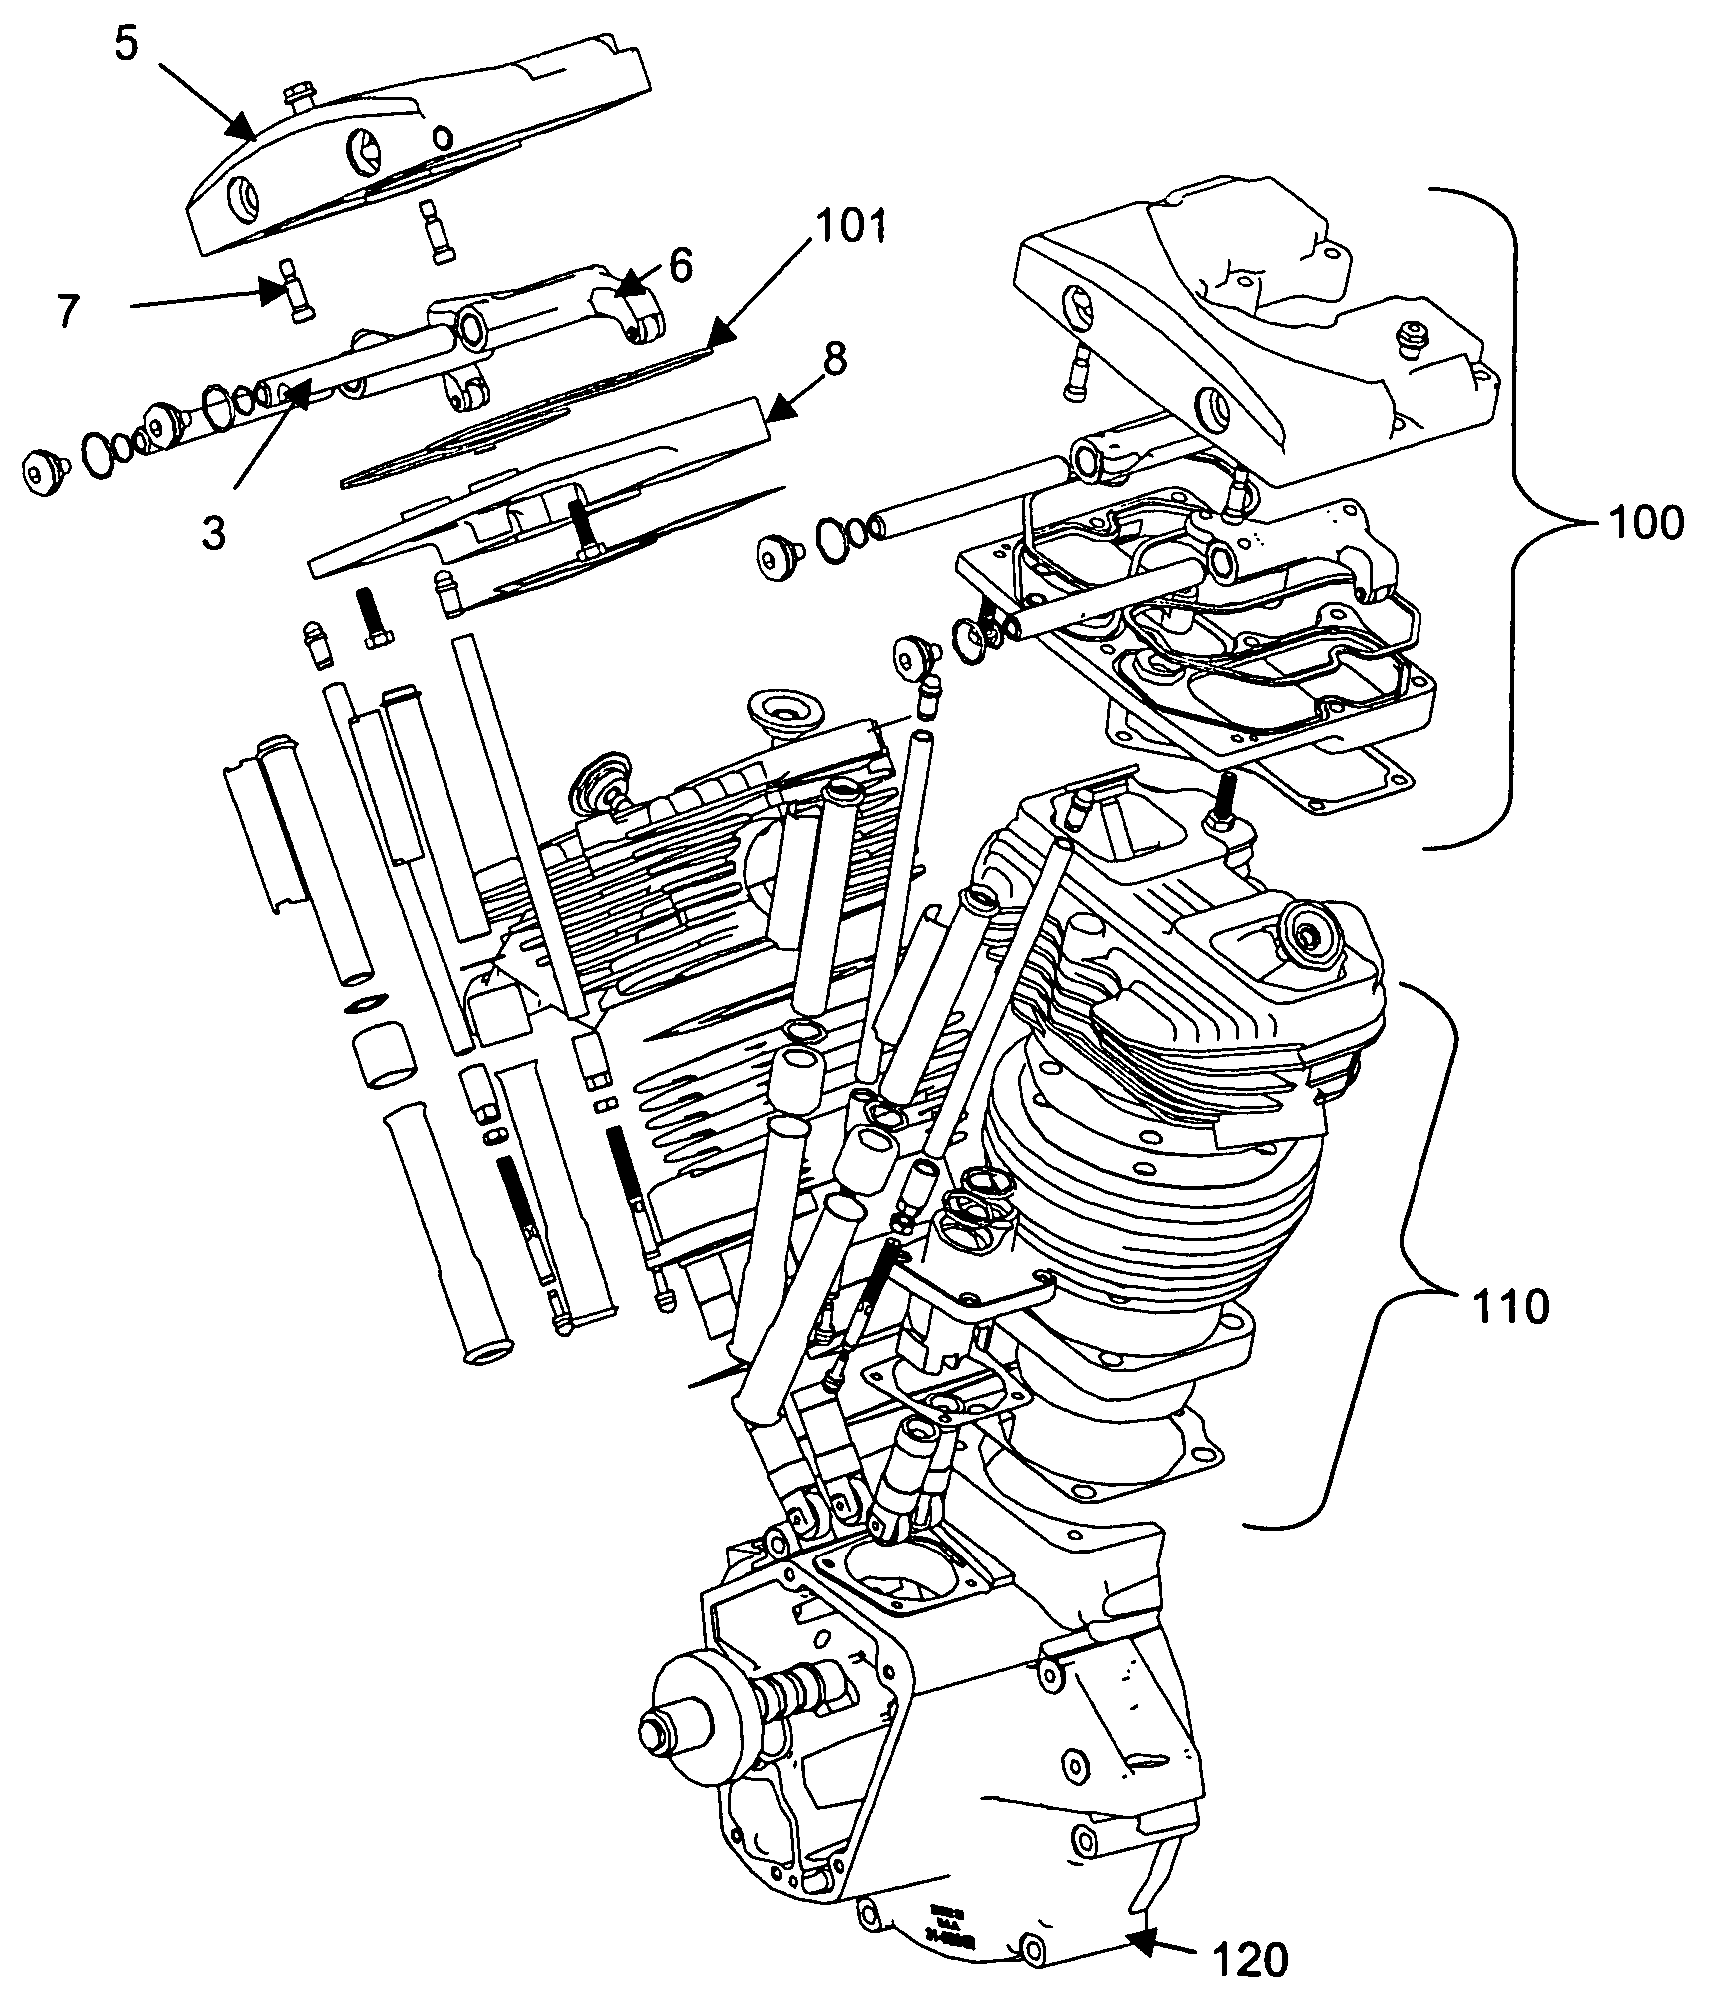 harley davidson 103 engine diagram  harley  free engine